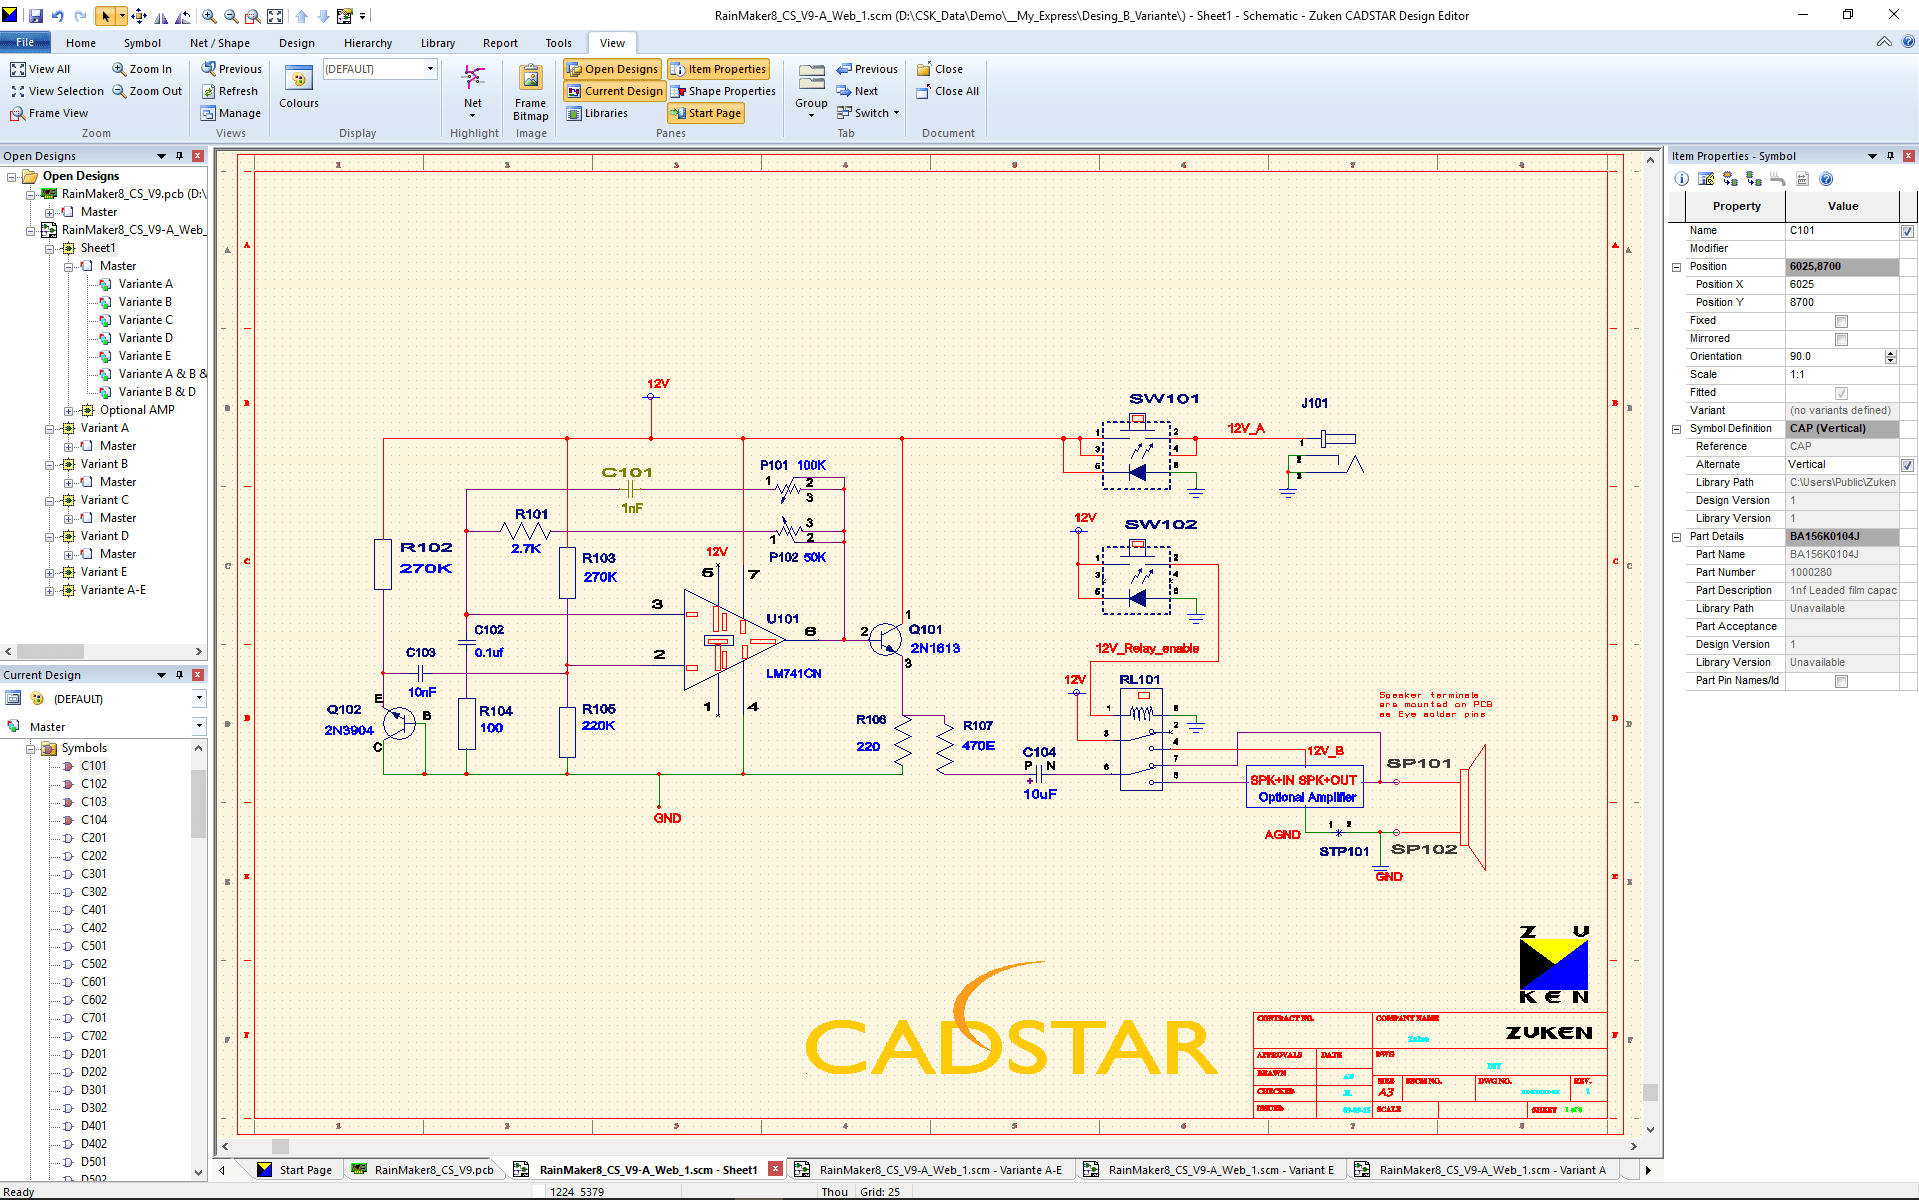 pcb design software cadstar schematics variants Master SCM view